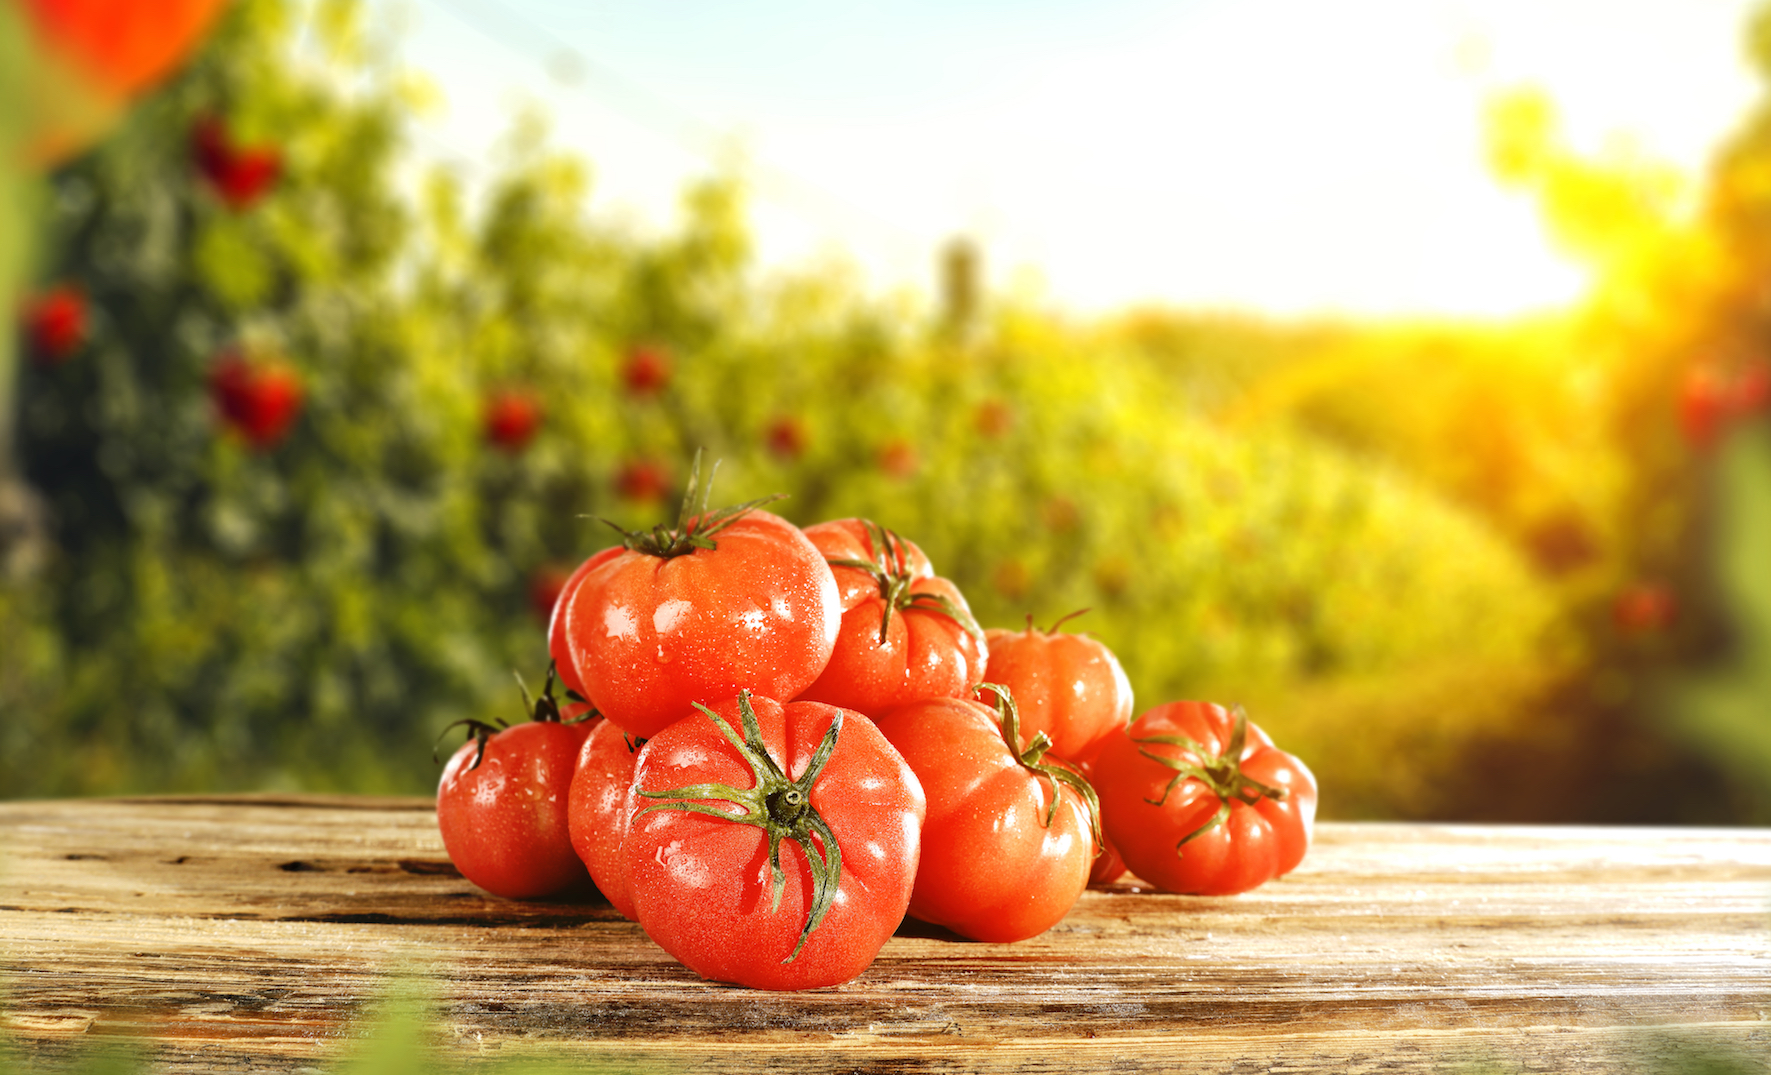 Researchers have revealed that a diet high in tomatoes and fruit can slow down the natural decline in lung function.